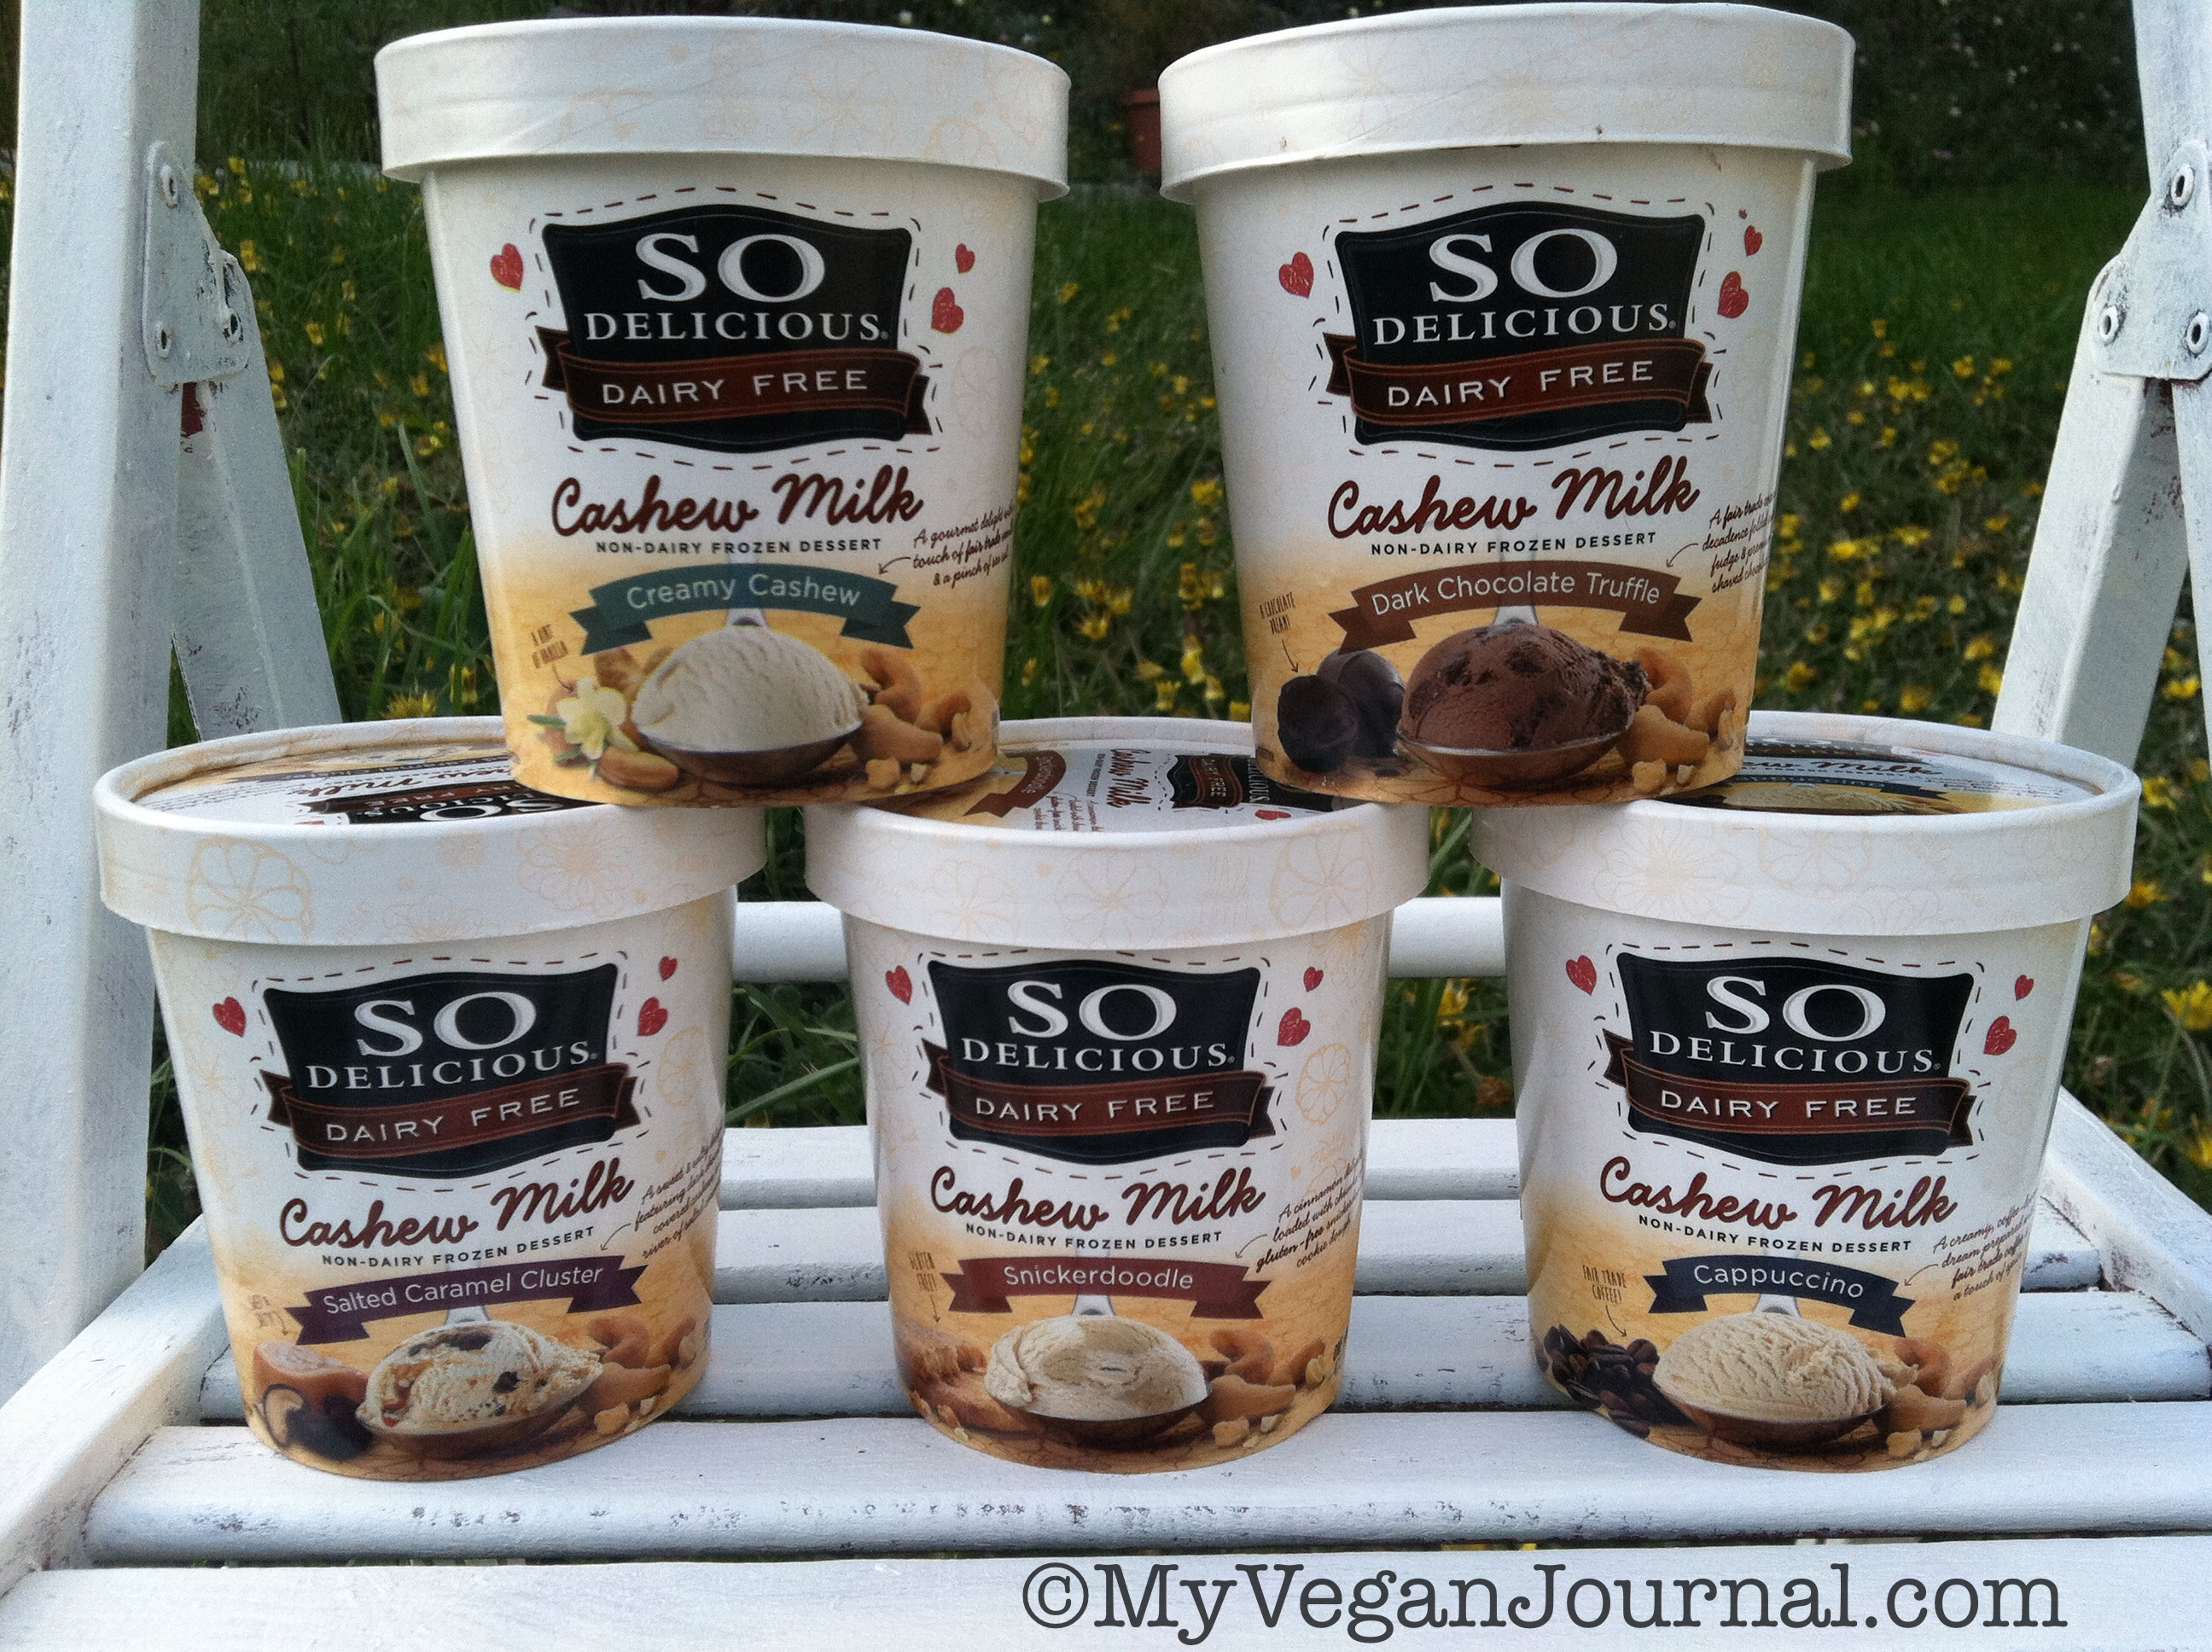 Soy Delicious Cashew Milk Ice Cream